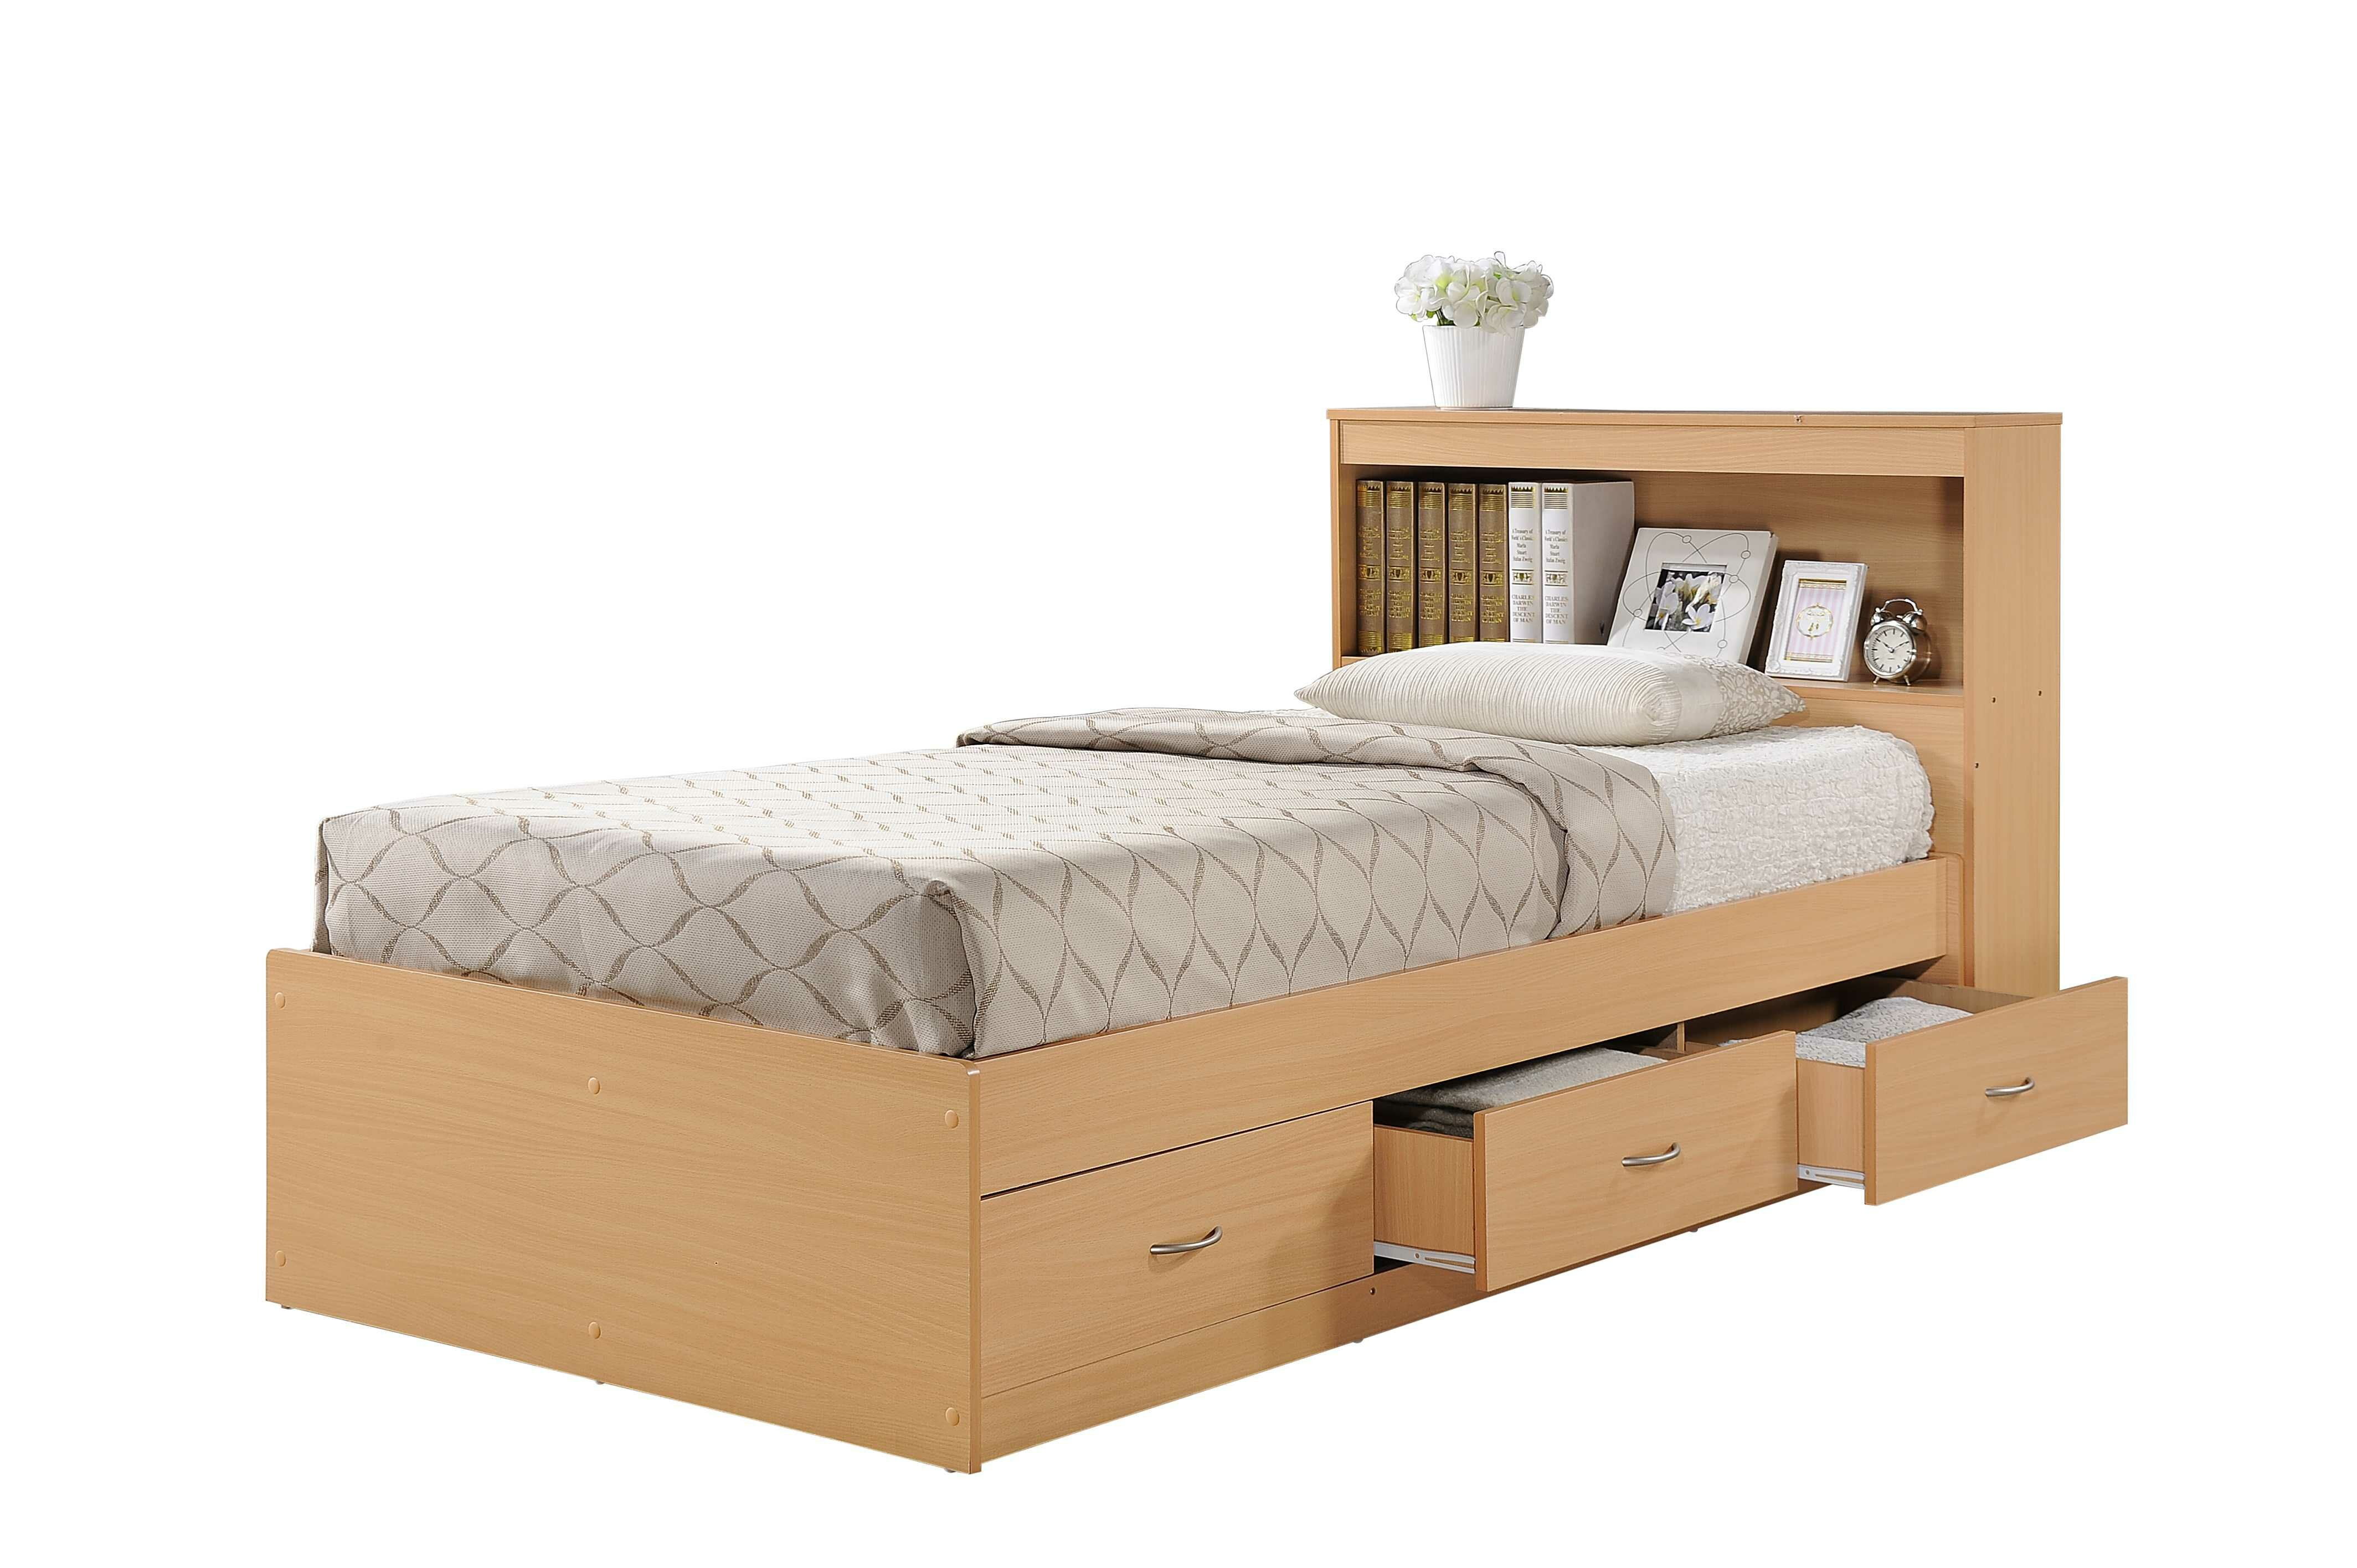 Twin size White Wood Daybed with PullOut Trundle Bed